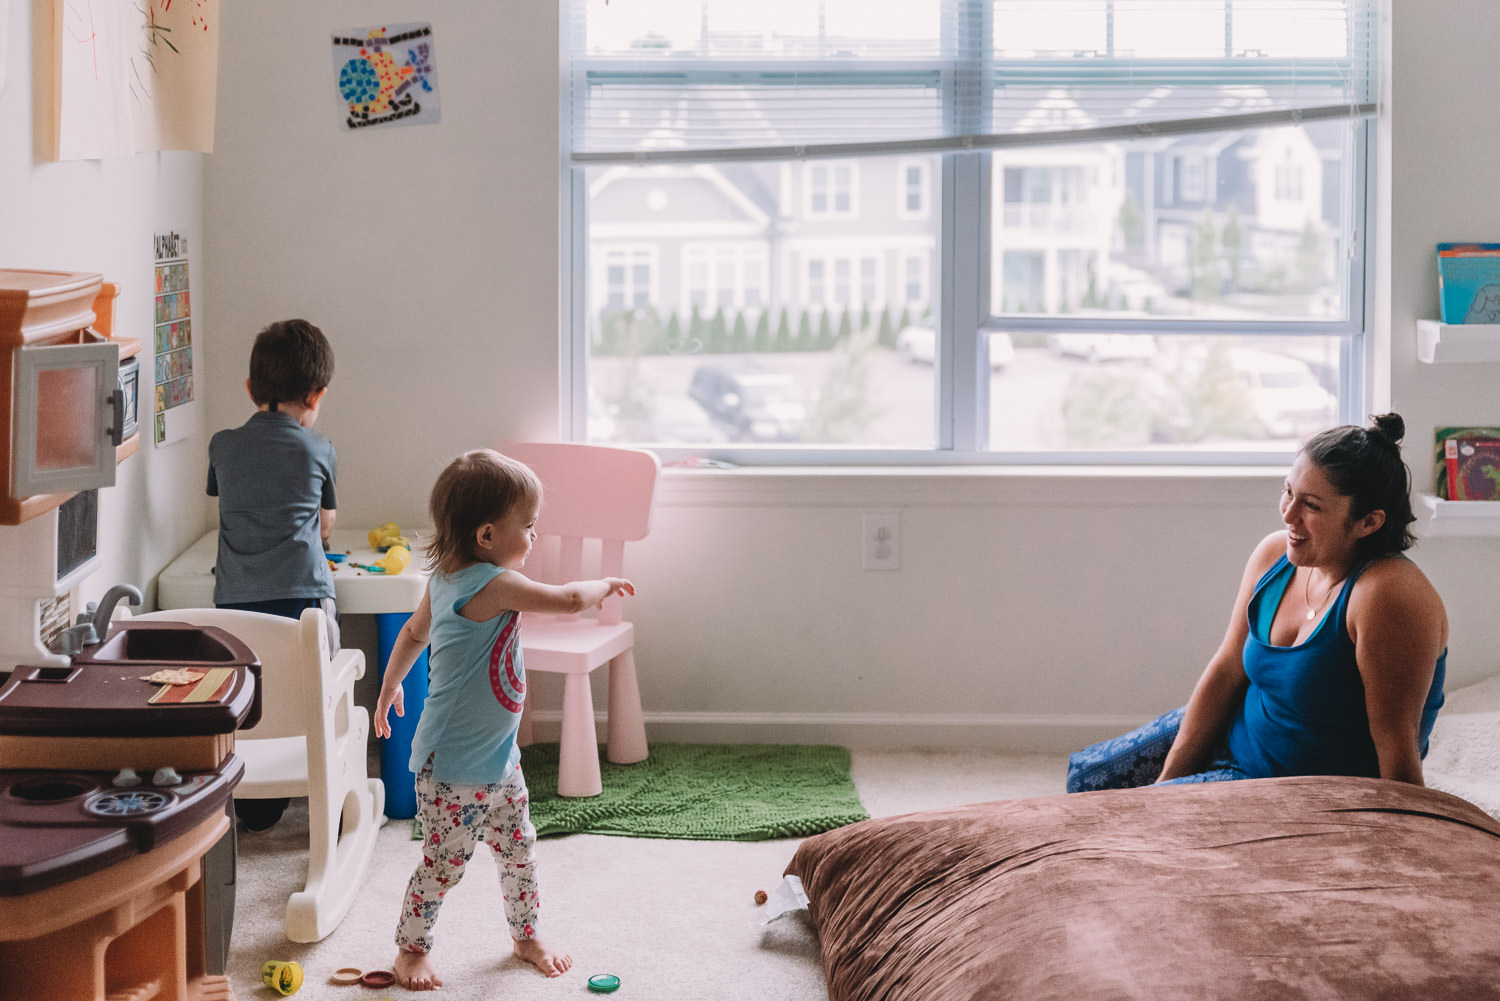 Kids and their mom play in a playroom.